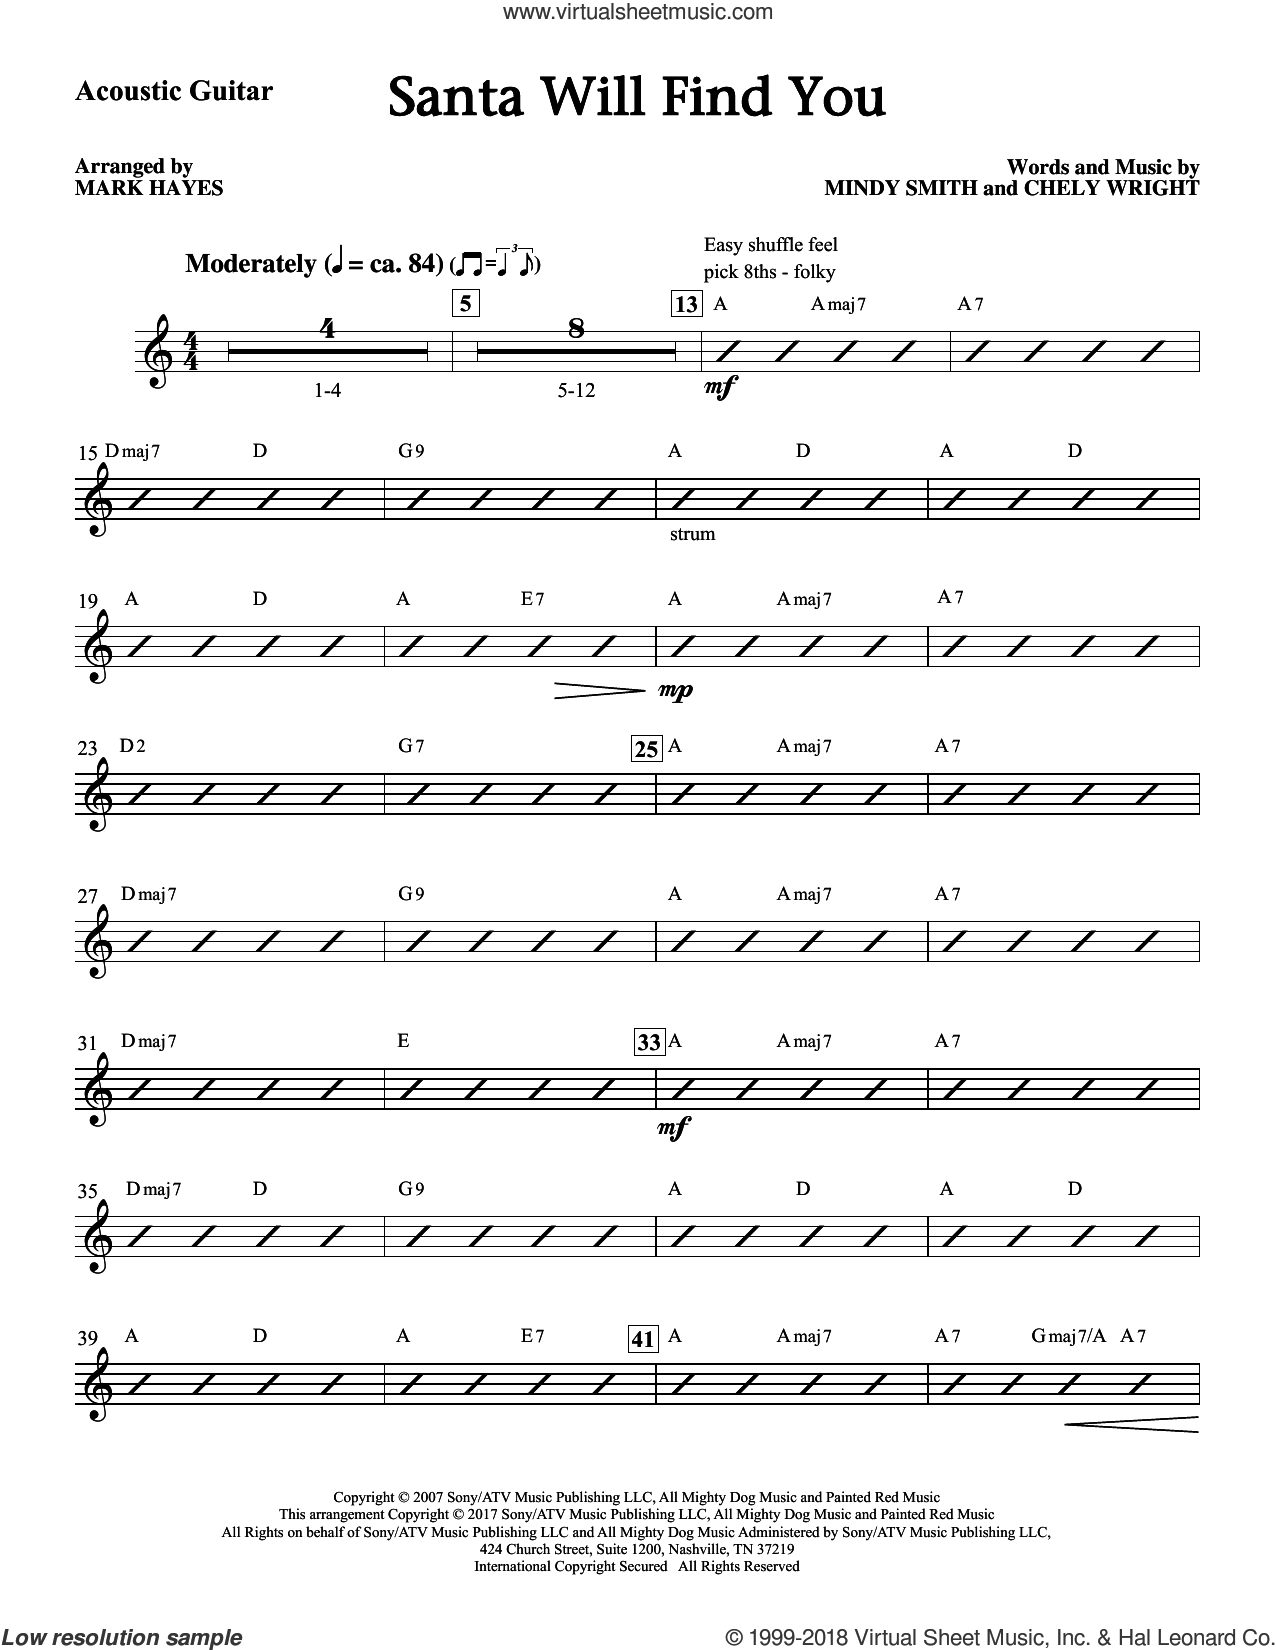 Santa Will Find You (complete set of parts) sheet music for orchestra/band by Mark Hayes, Chely Wright and Mindy Smith, intermediate skill level